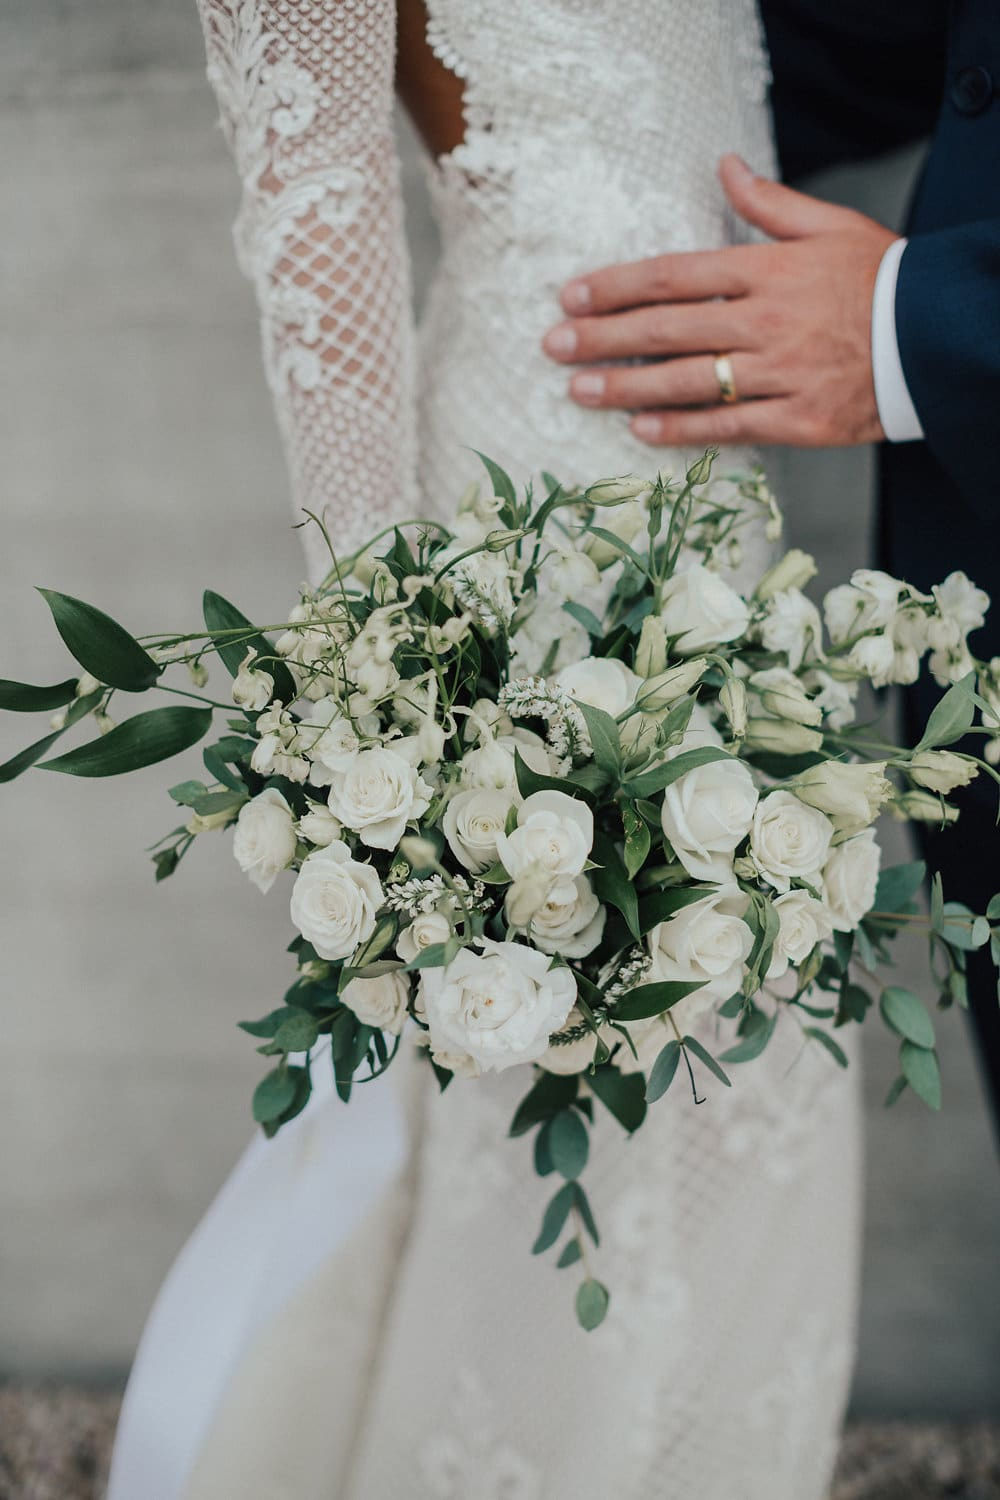 Real Weddings | Vinka Design | Real Brides Wearing Vinka Gowns | Nicole and Hayden close up of lower half displaying bouquet and beautiful custom dress